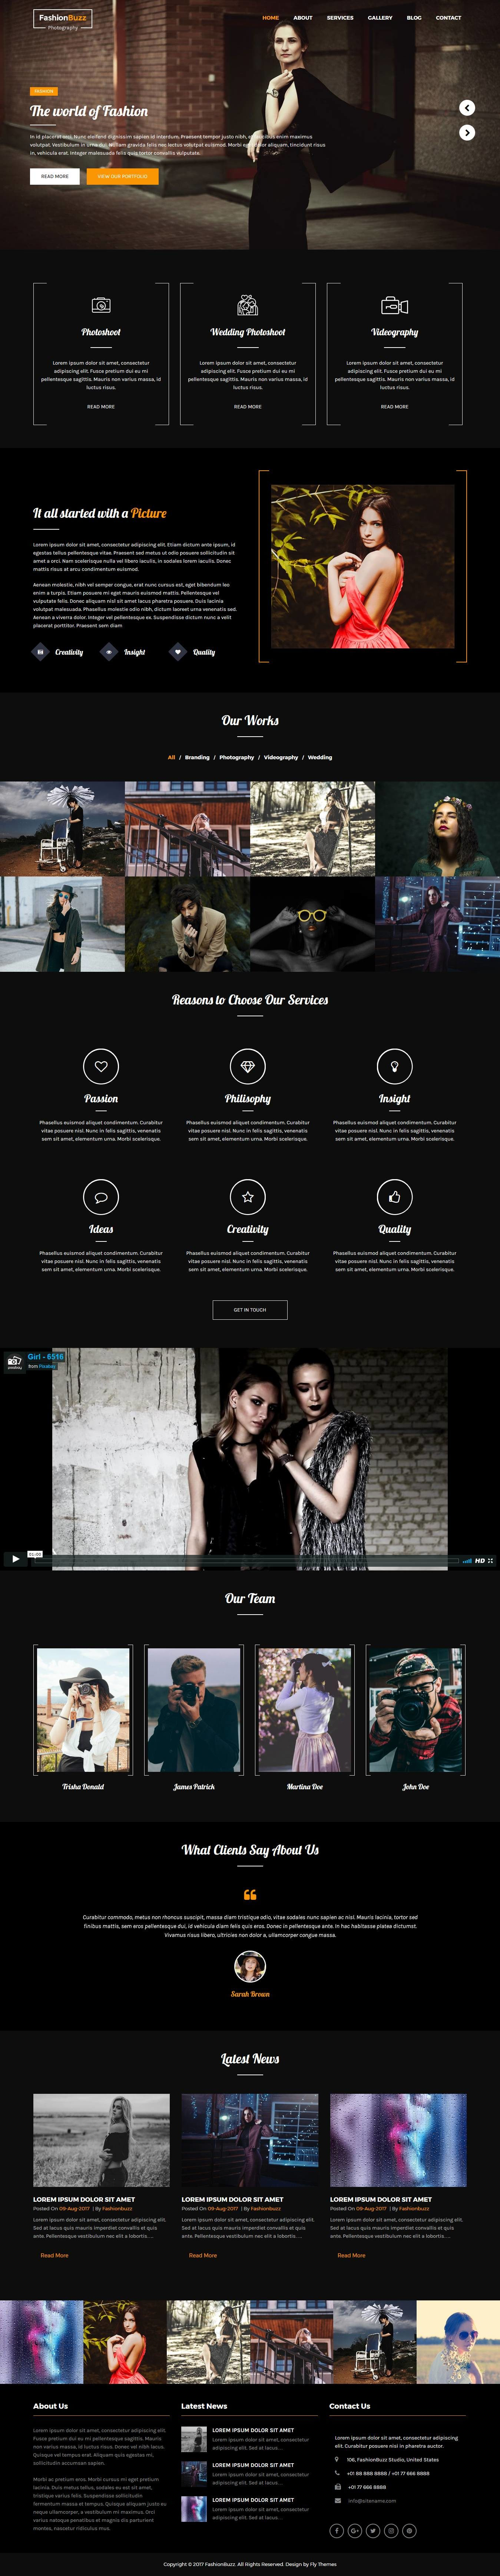 fashionbuzz-wordpress-theme